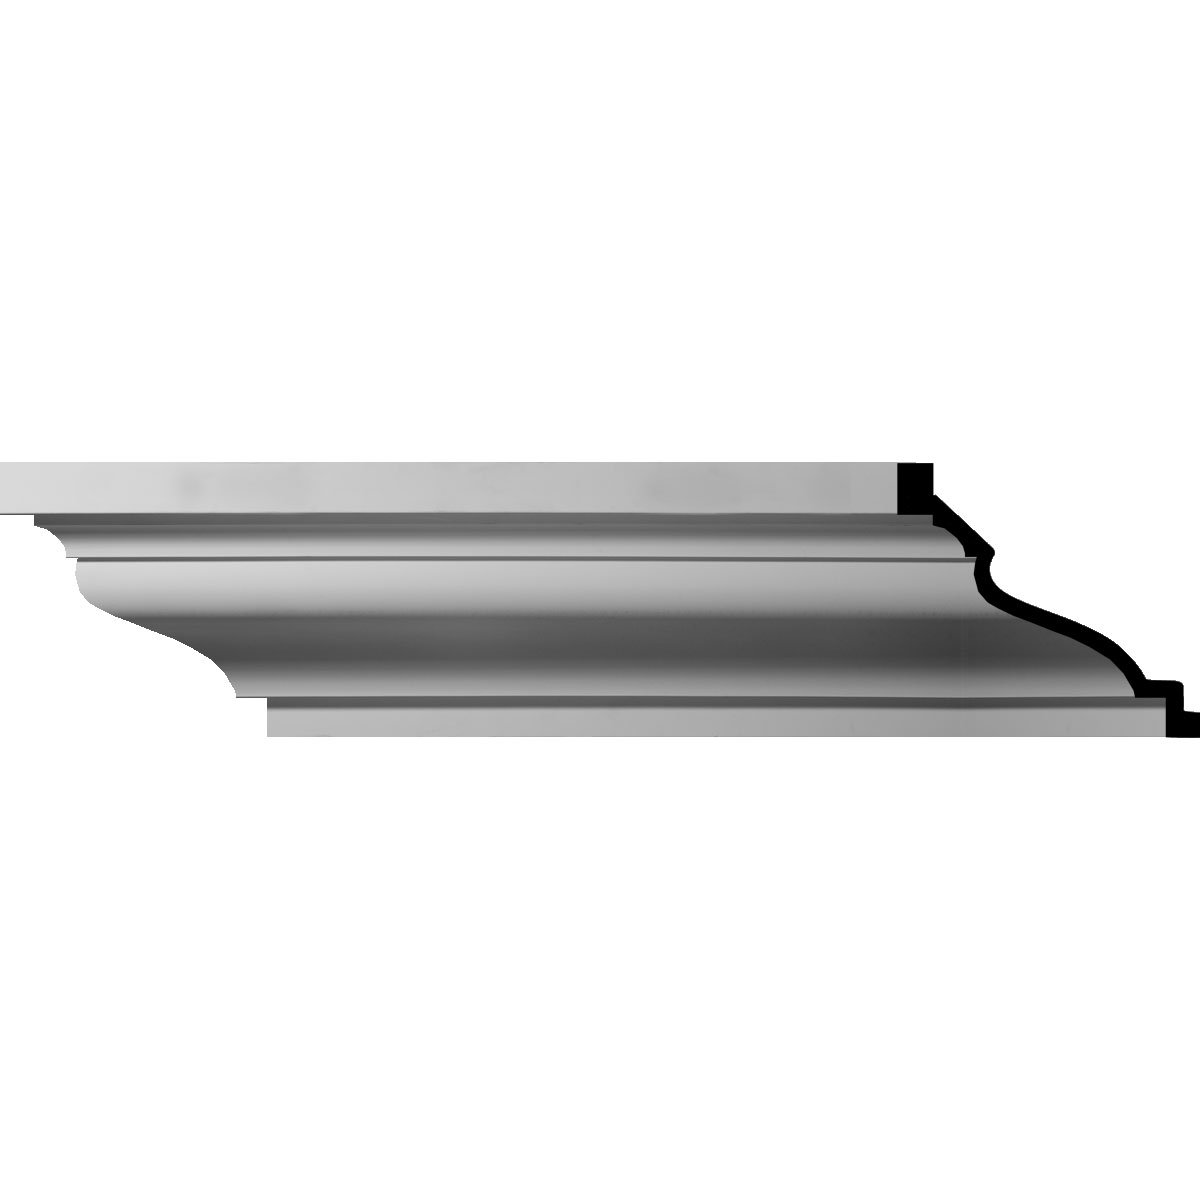 Ekena Millwork MLD10X12X16MI-CASE-12 10-5/8'' H x 12-5/8'' P x 16-1/8'' F x 96'' L Large Milton Smooth Crown Molding (12-Pack)